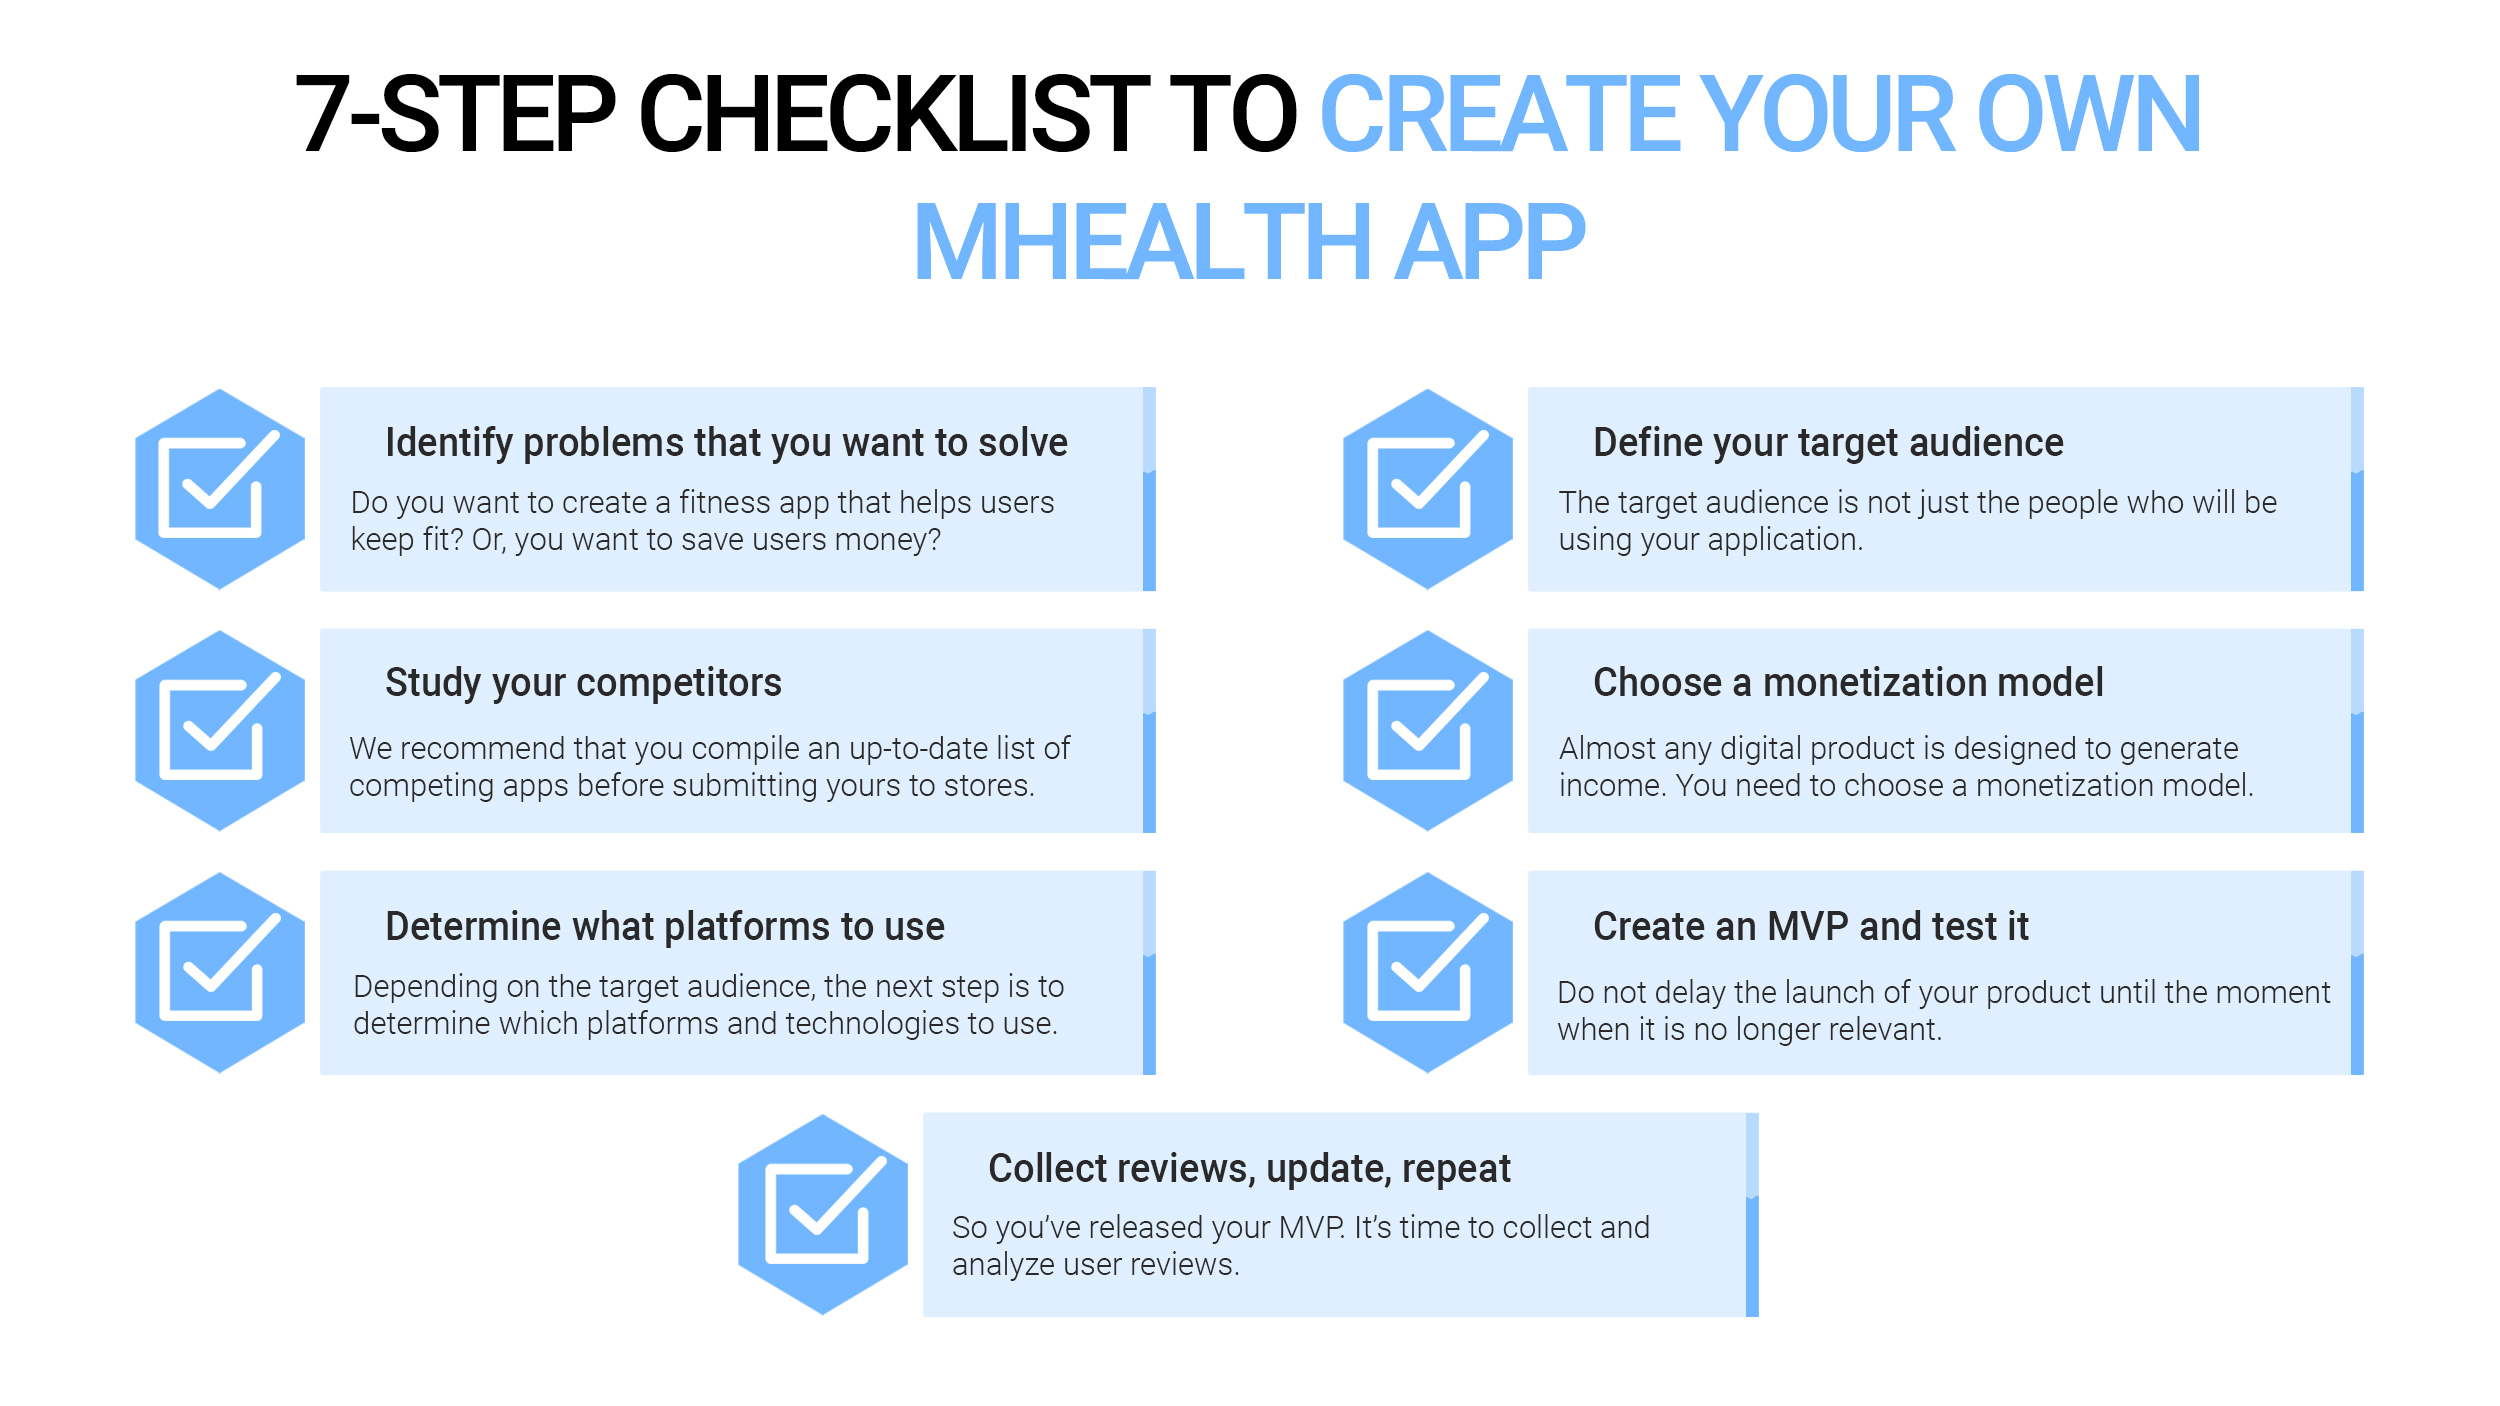 7-step checklist to create your own mHealth app